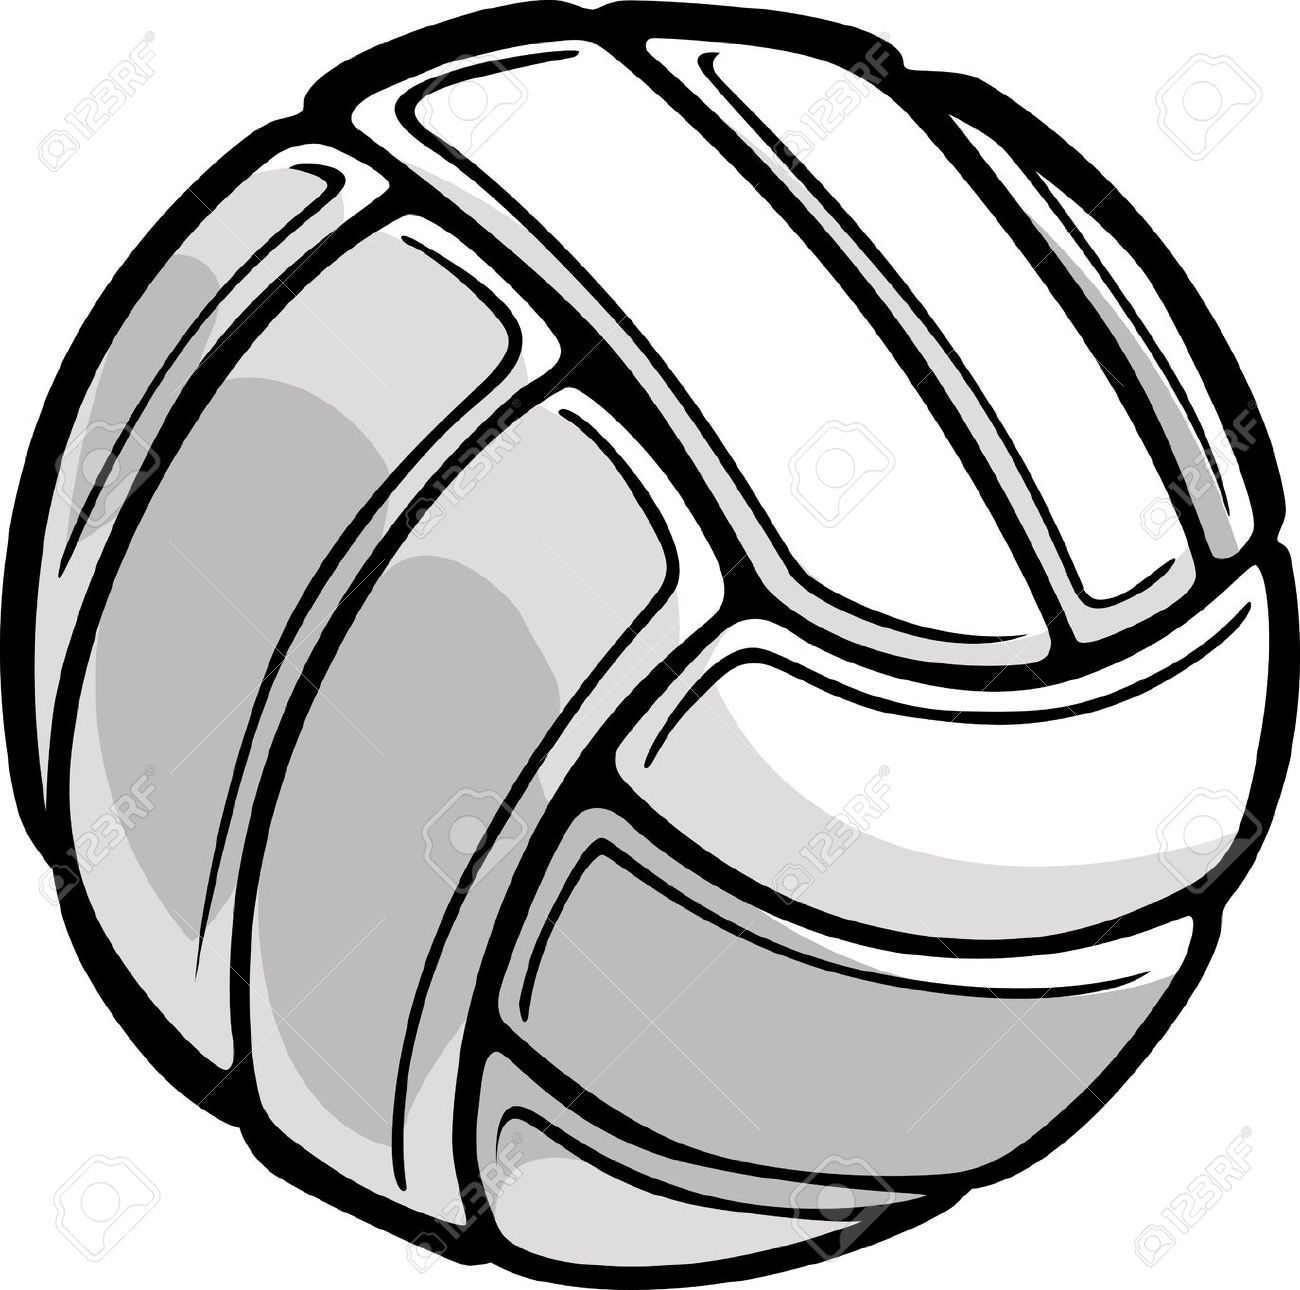 Image Of A Volleyball Ball Illustration Volleyball Illustration Vector Images